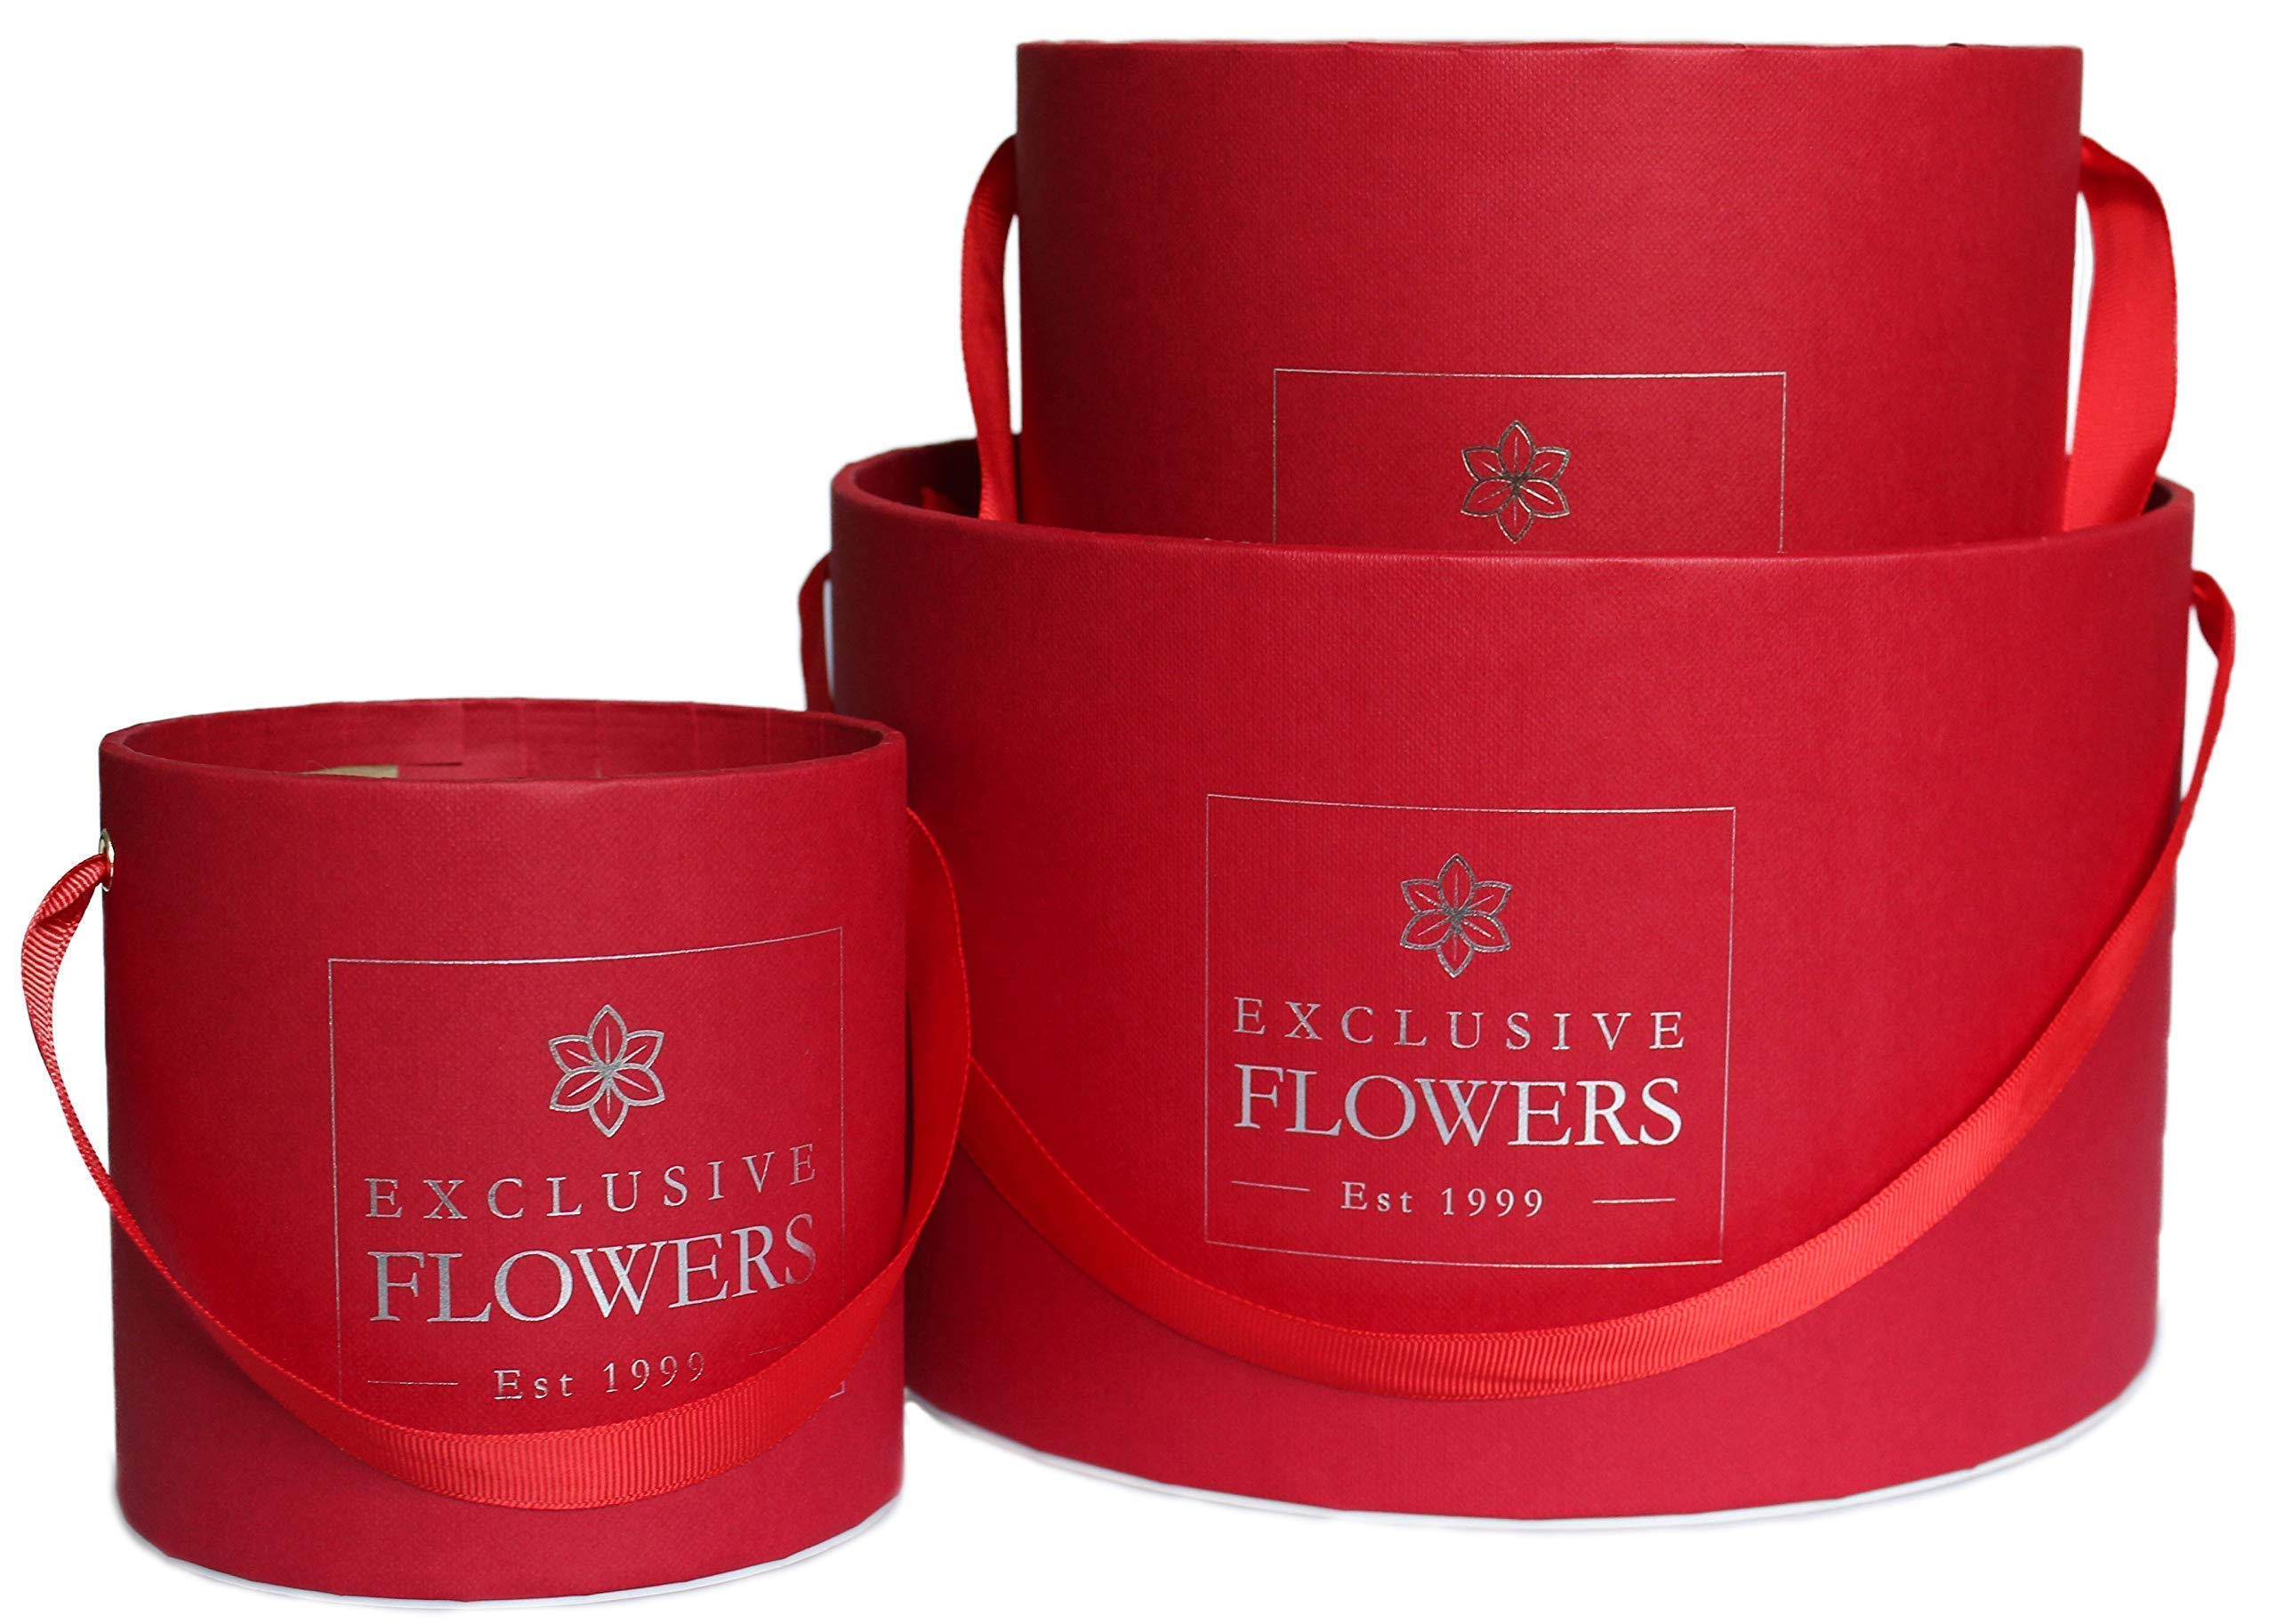 Gift Box Round Red Silver Elegant Flower Box Wedding Decor 3 Sizes Pack (S/M/L) Handmade in Europe 4 available colors ExclusiveFlowers